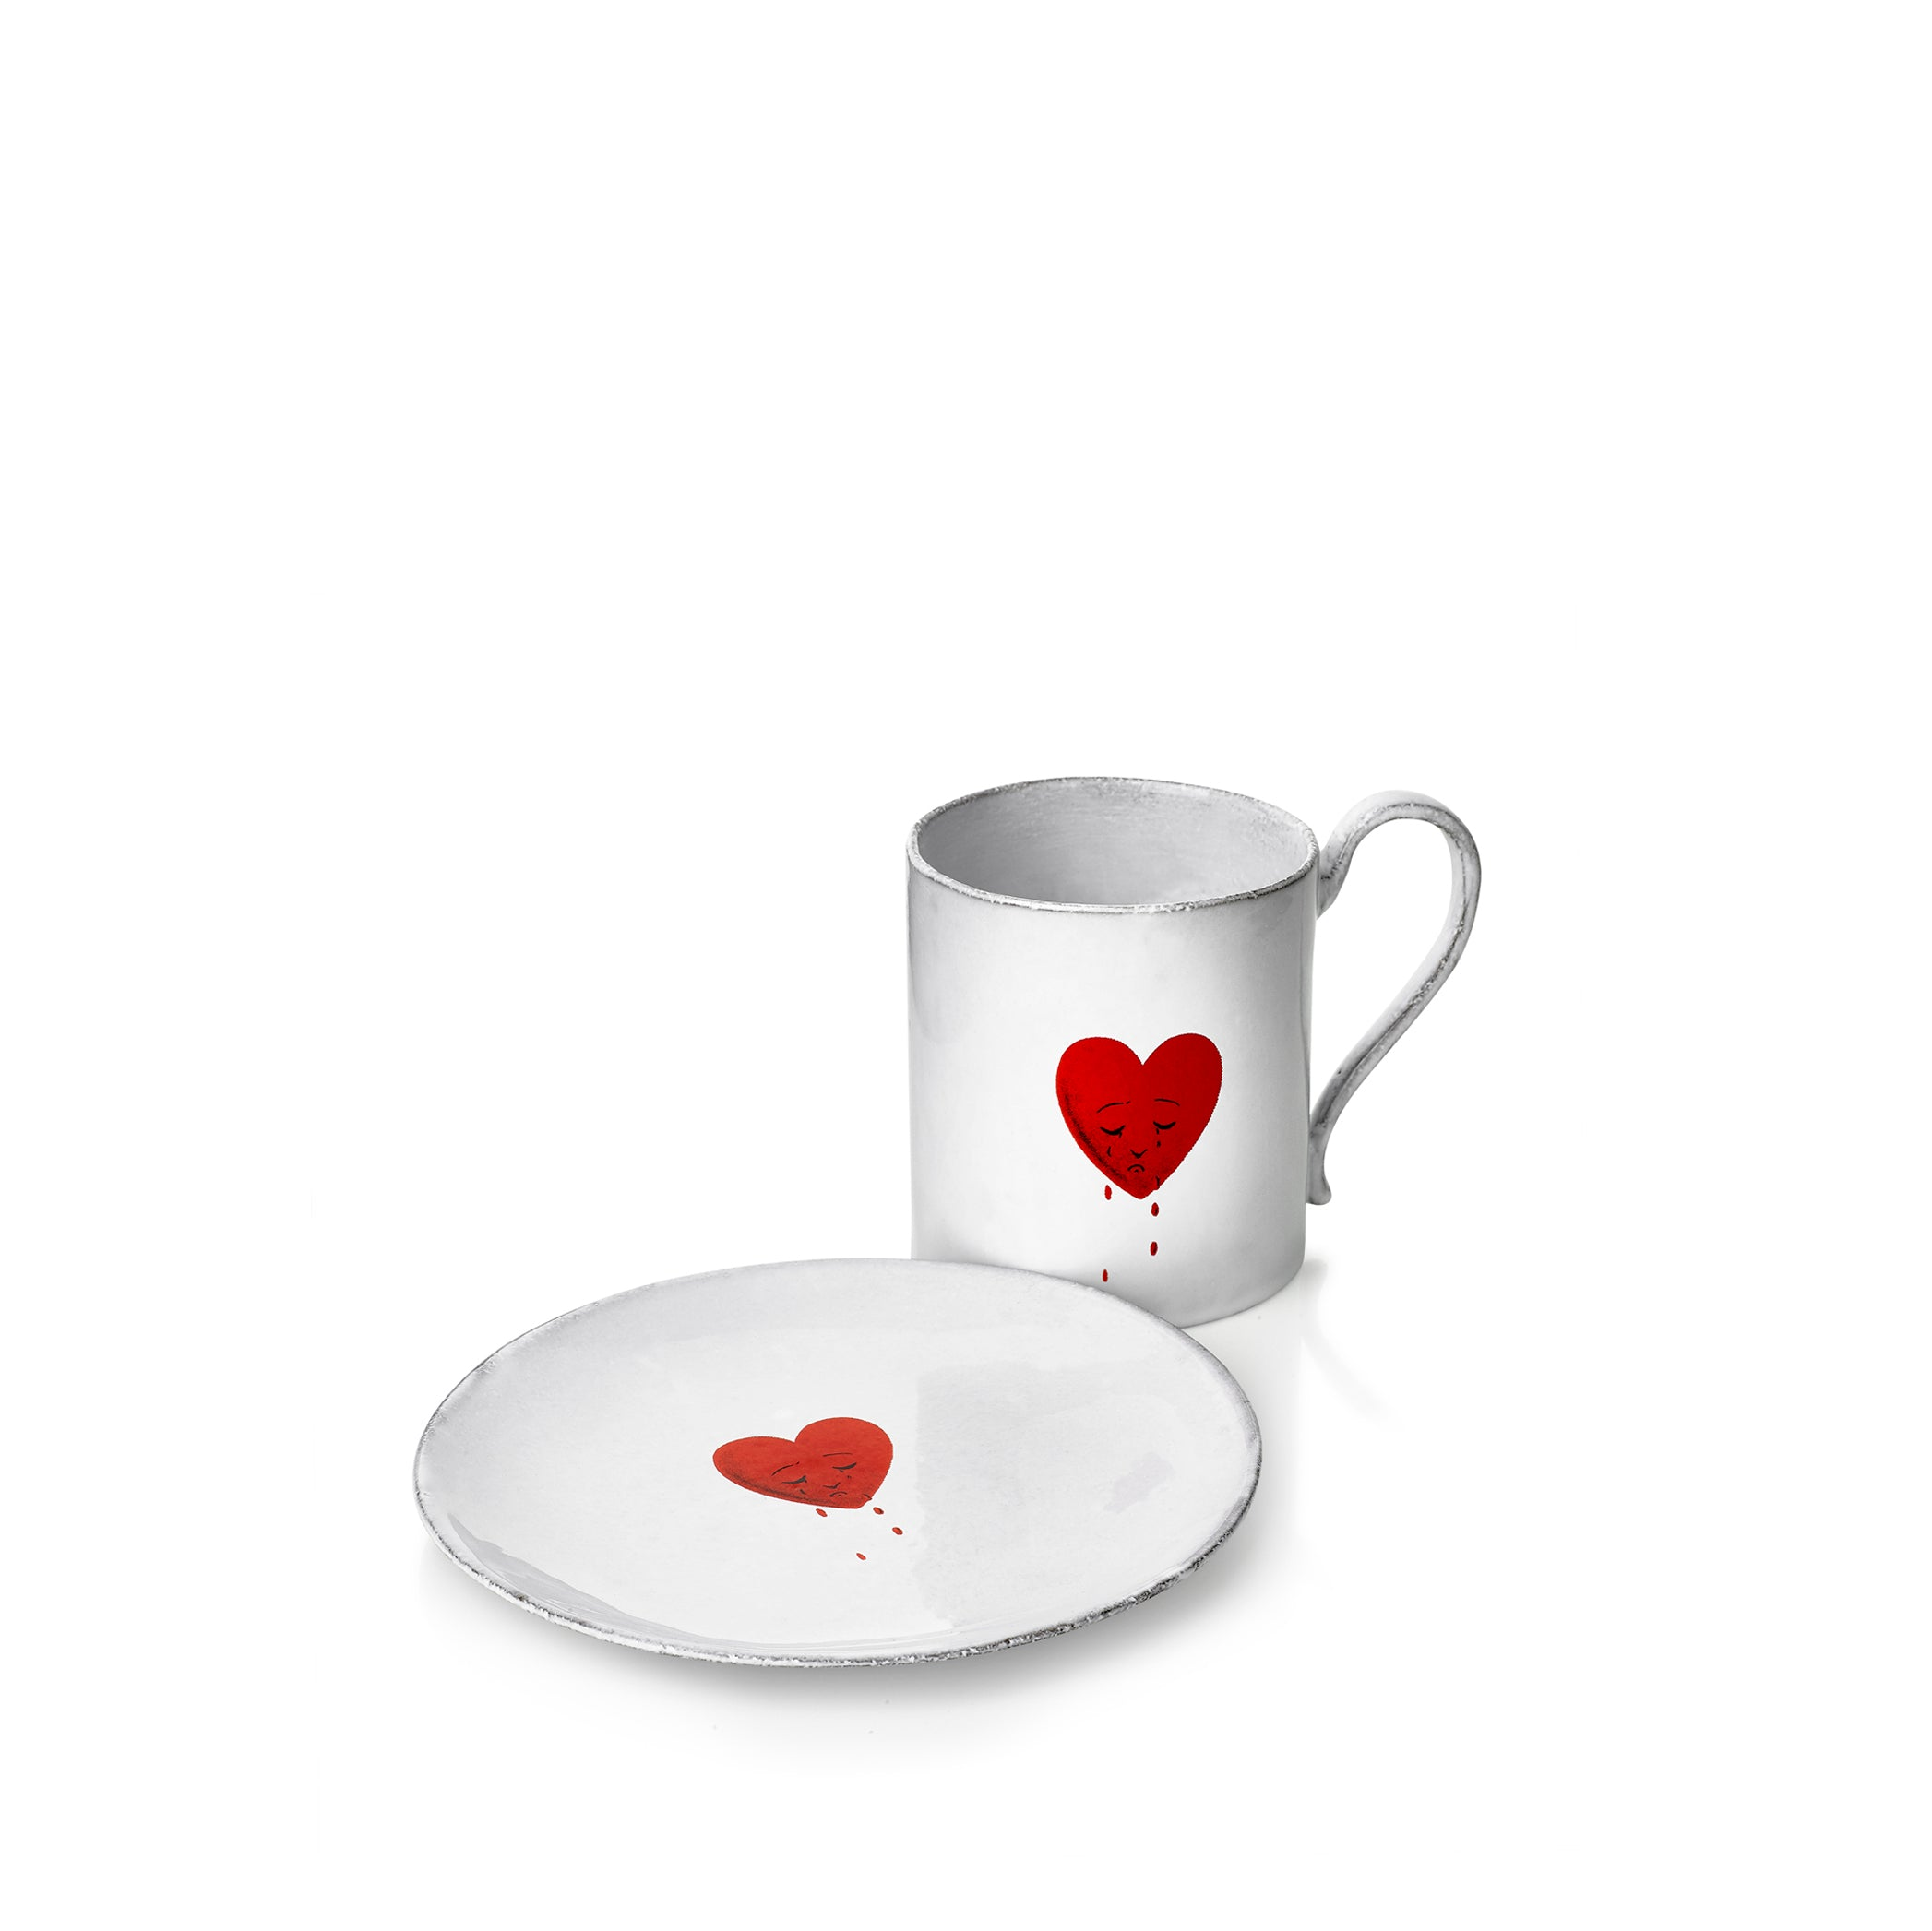 Crying Heart Mug by Astier de Villatte